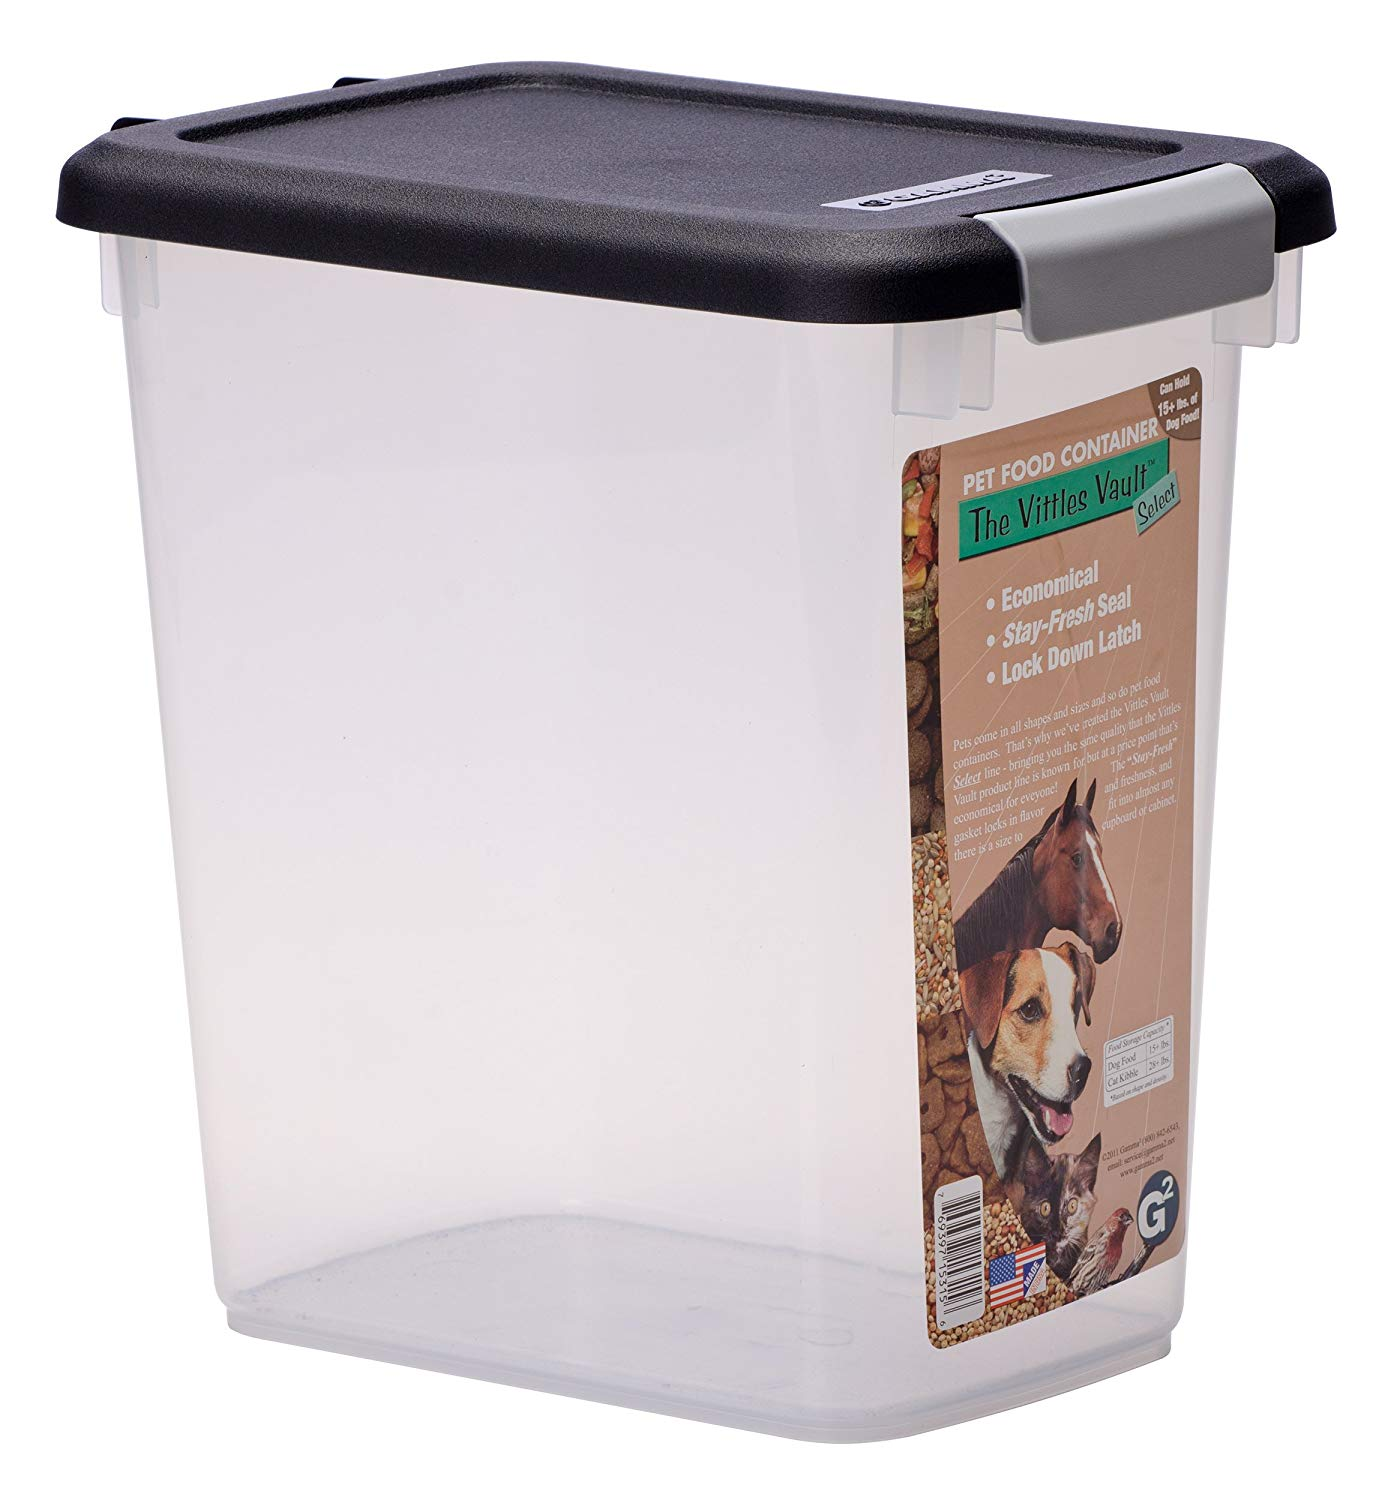 Buy GAMMA2 Vittles Vault Airtight Pet Food Container